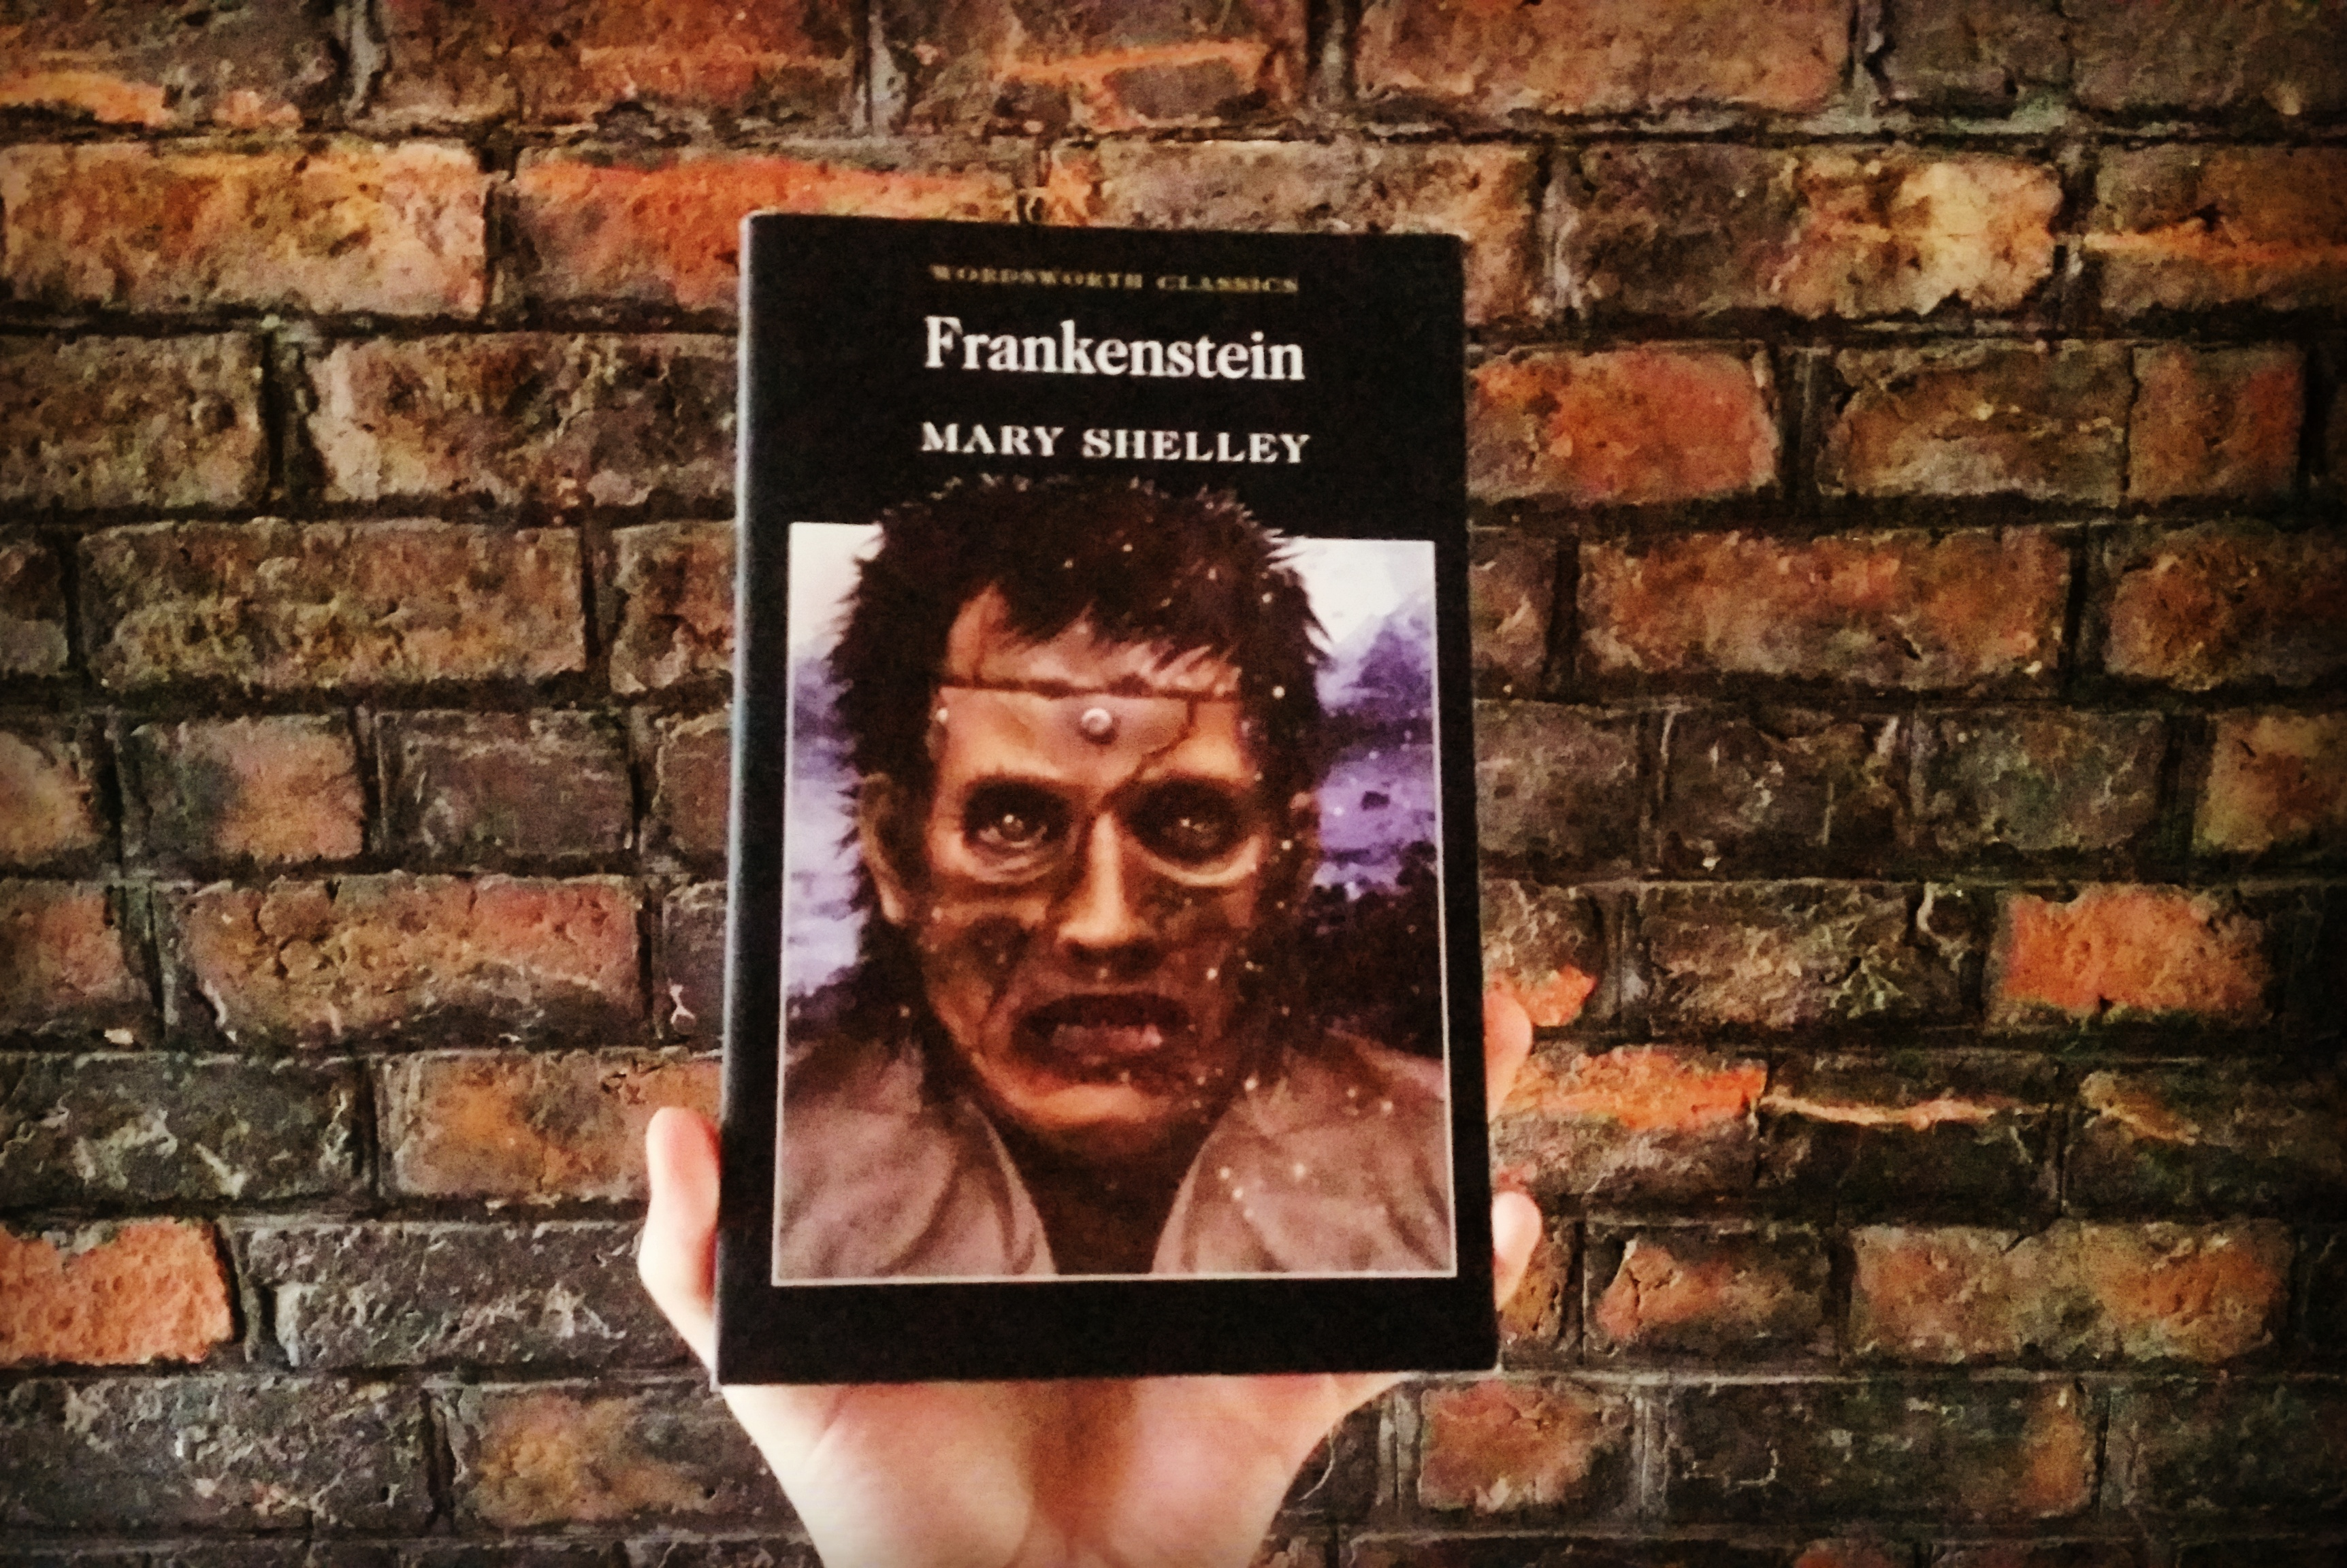 in the novel frankenstein by mary So how did this influence a young mary shelly and lead her to compose one of the most widely read novels of all time, frankenstein or, the modern prometheus.